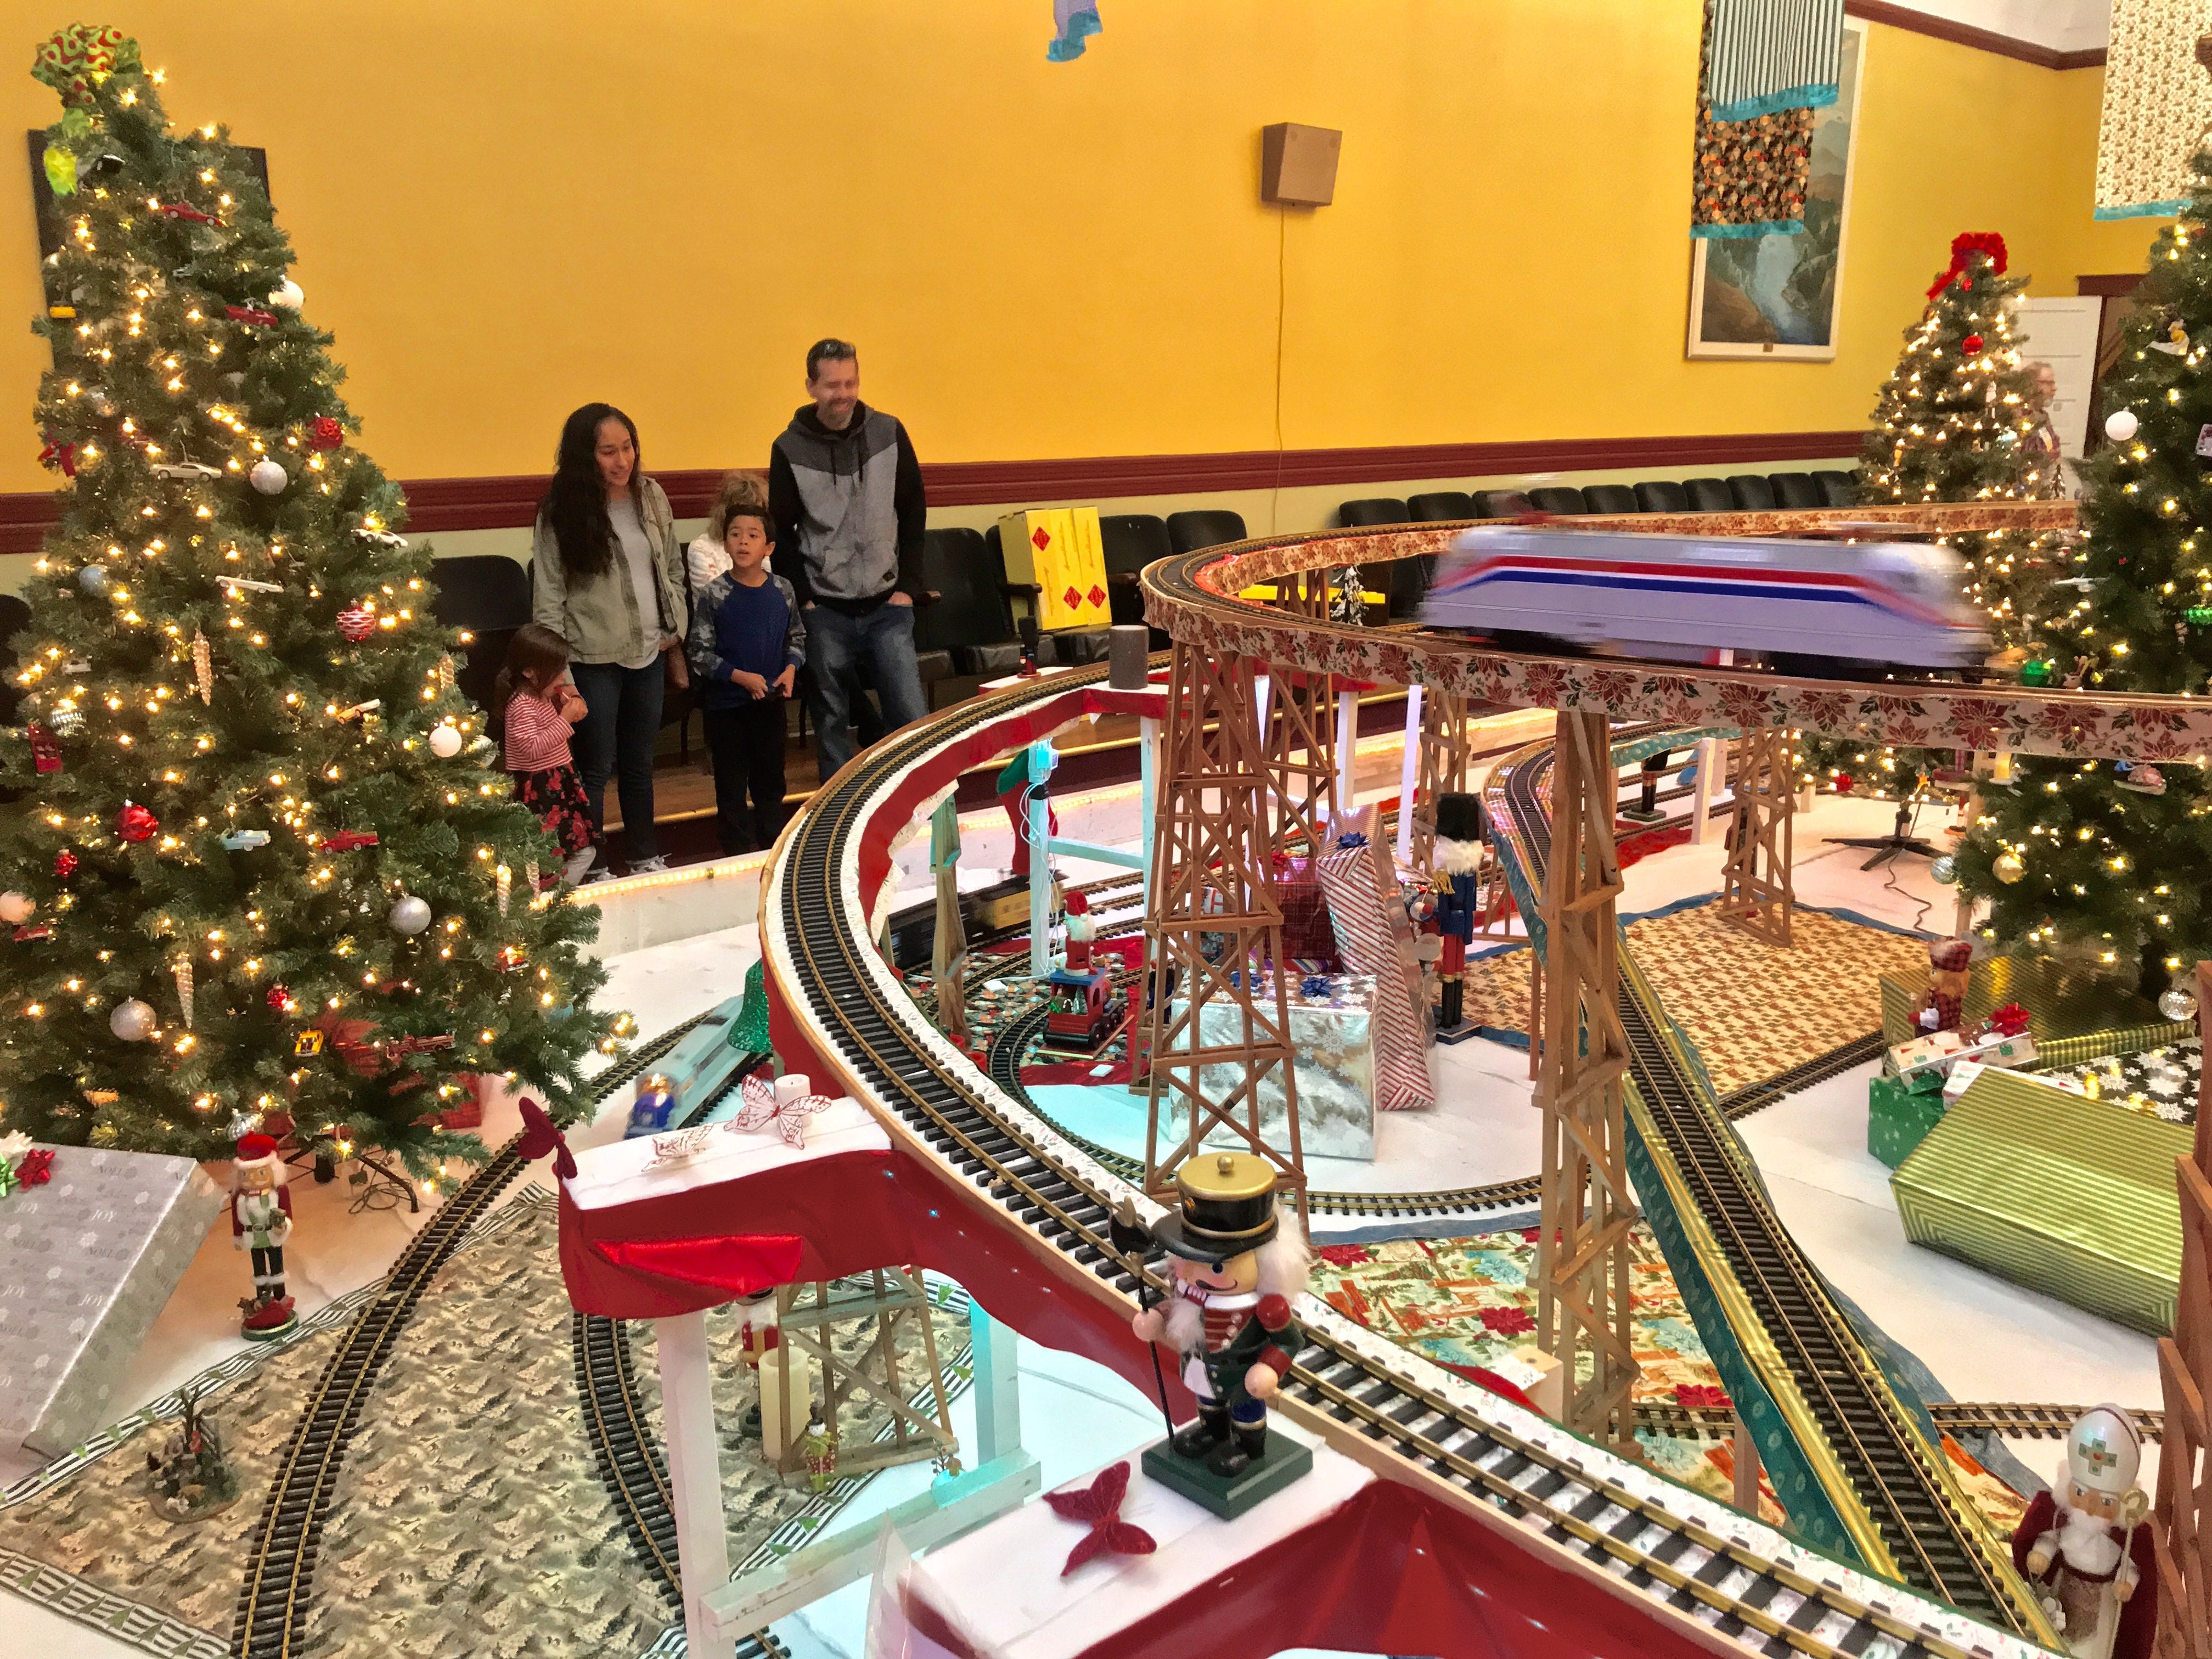 A family watches toy trains at the Odd Fellows Christmas train display in Santa Paula.